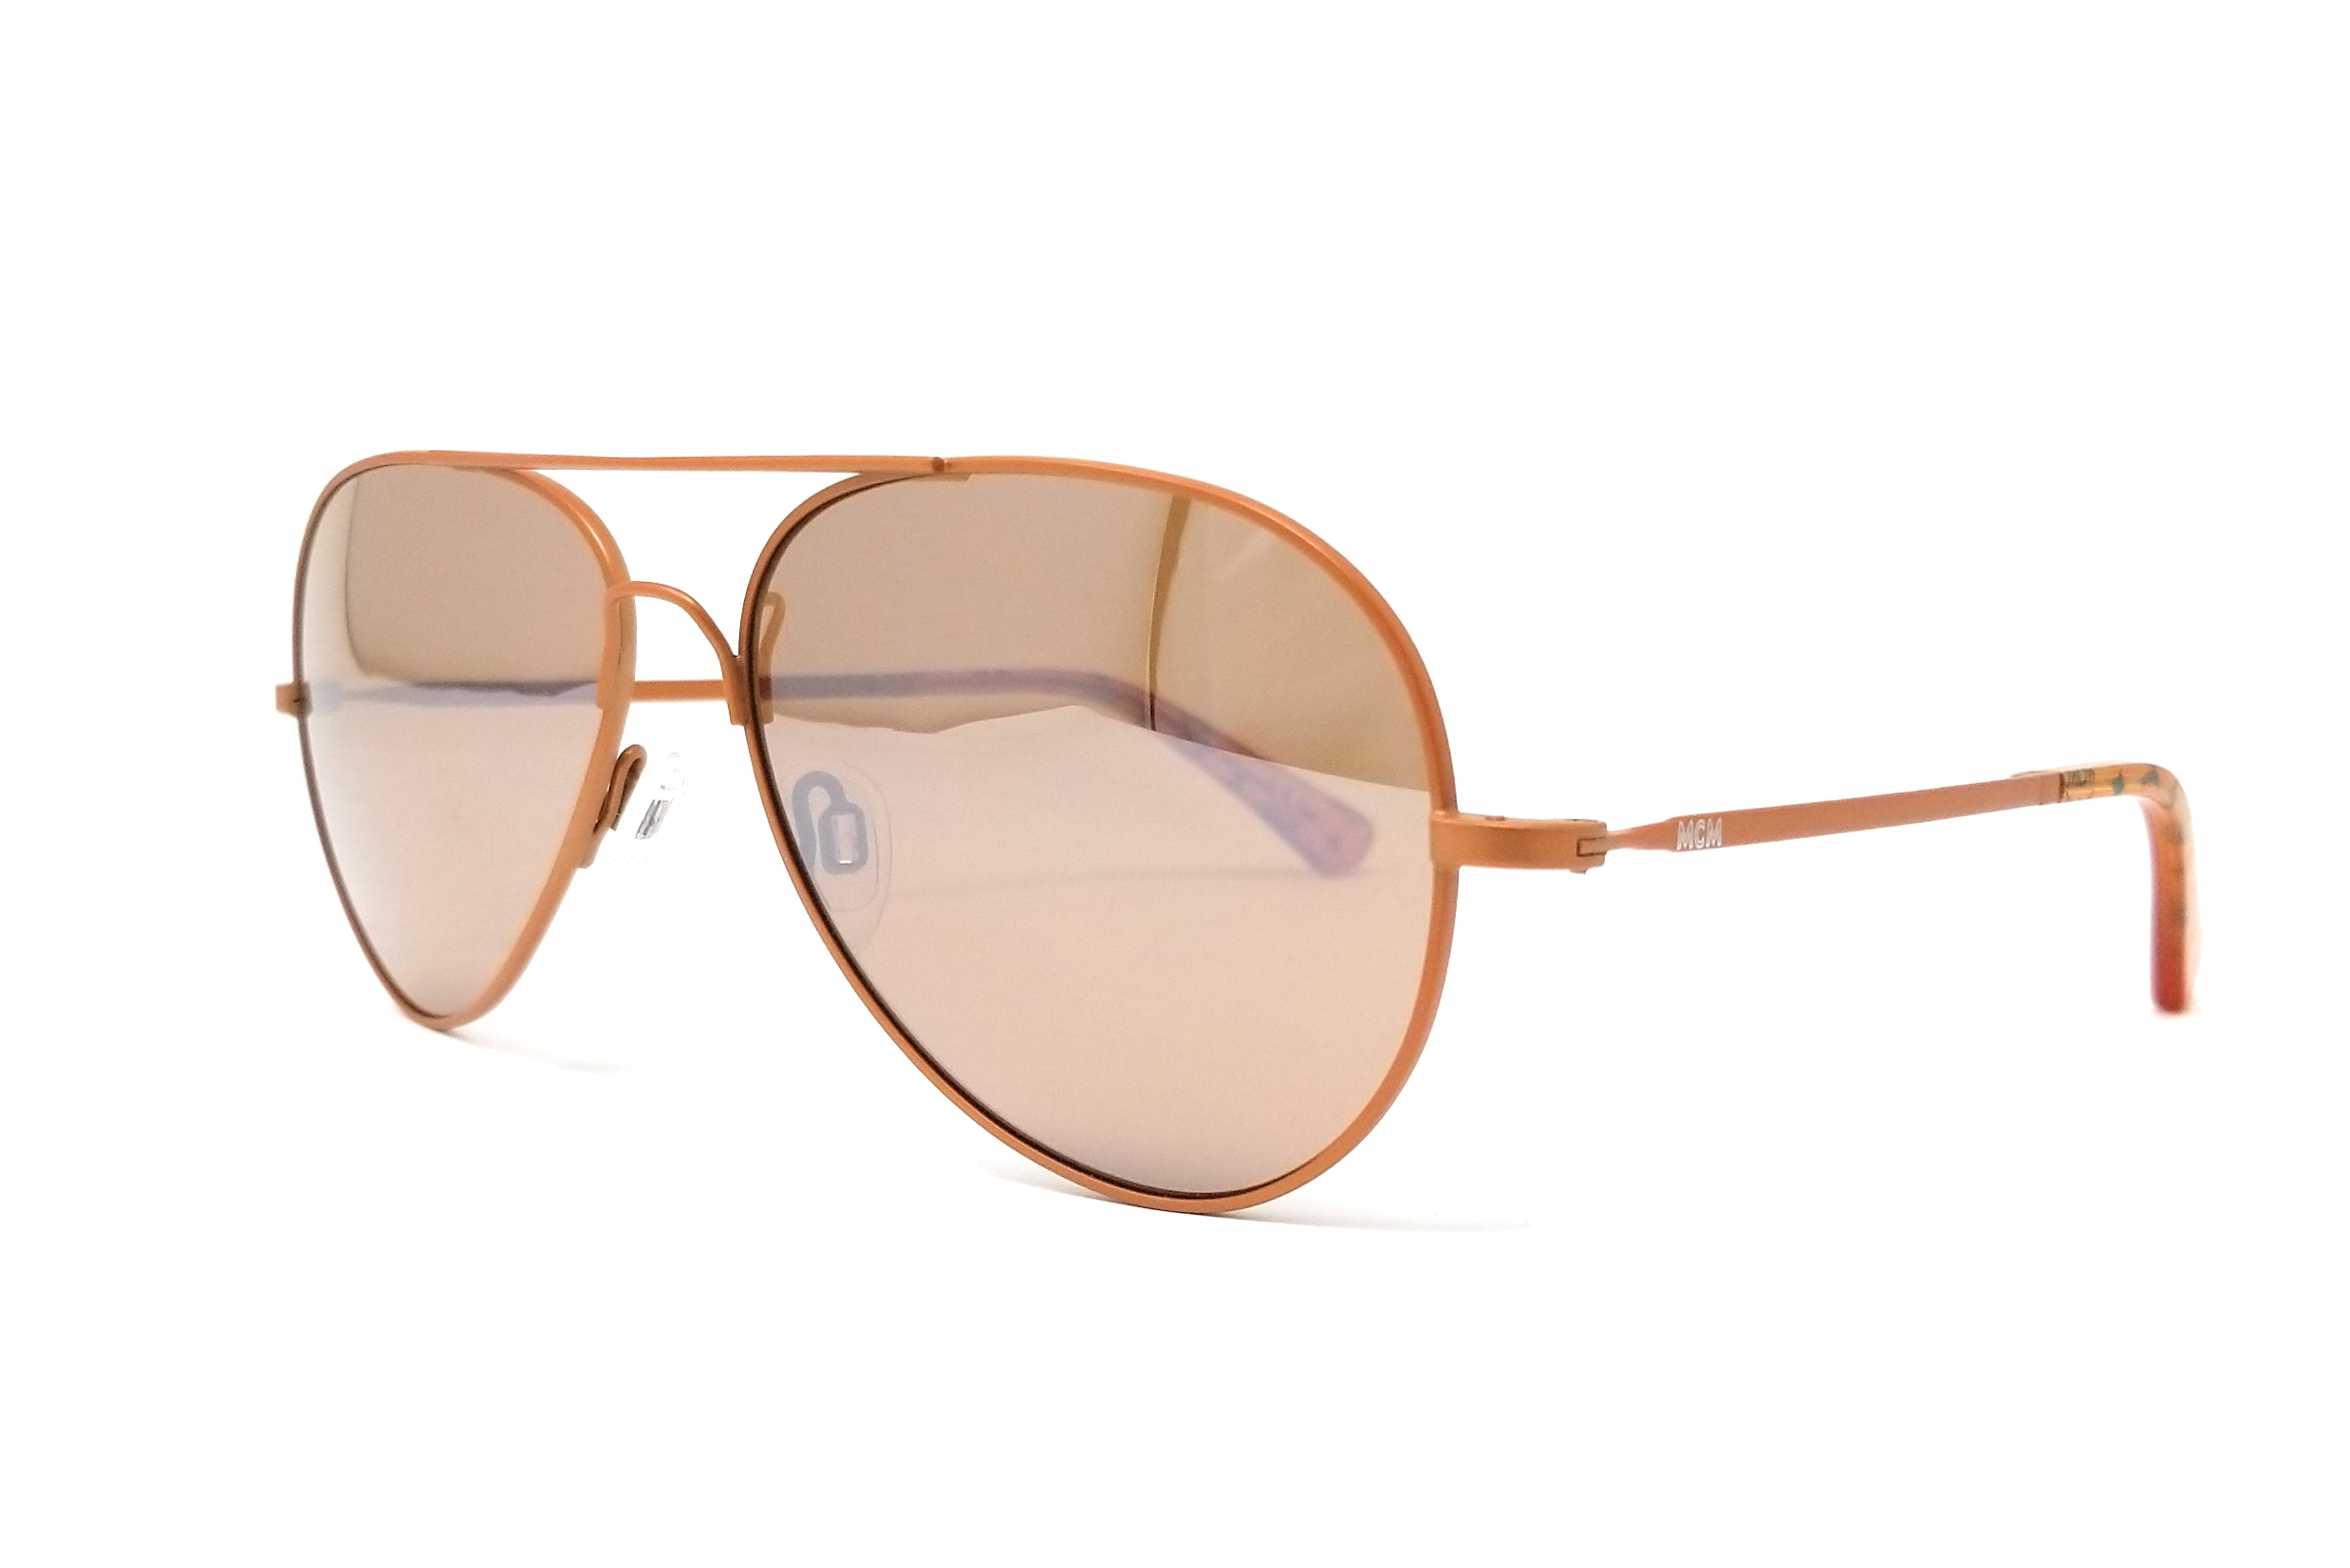 c71694f65f143 MCM Sunglasses MCM100S 260 Matte Cognac Flexon Aviator 59x15x140. Item  Description. Brand  MCM  Model  MCM100S  Condition  New  Gender  Unisex  Frame  Color  ...